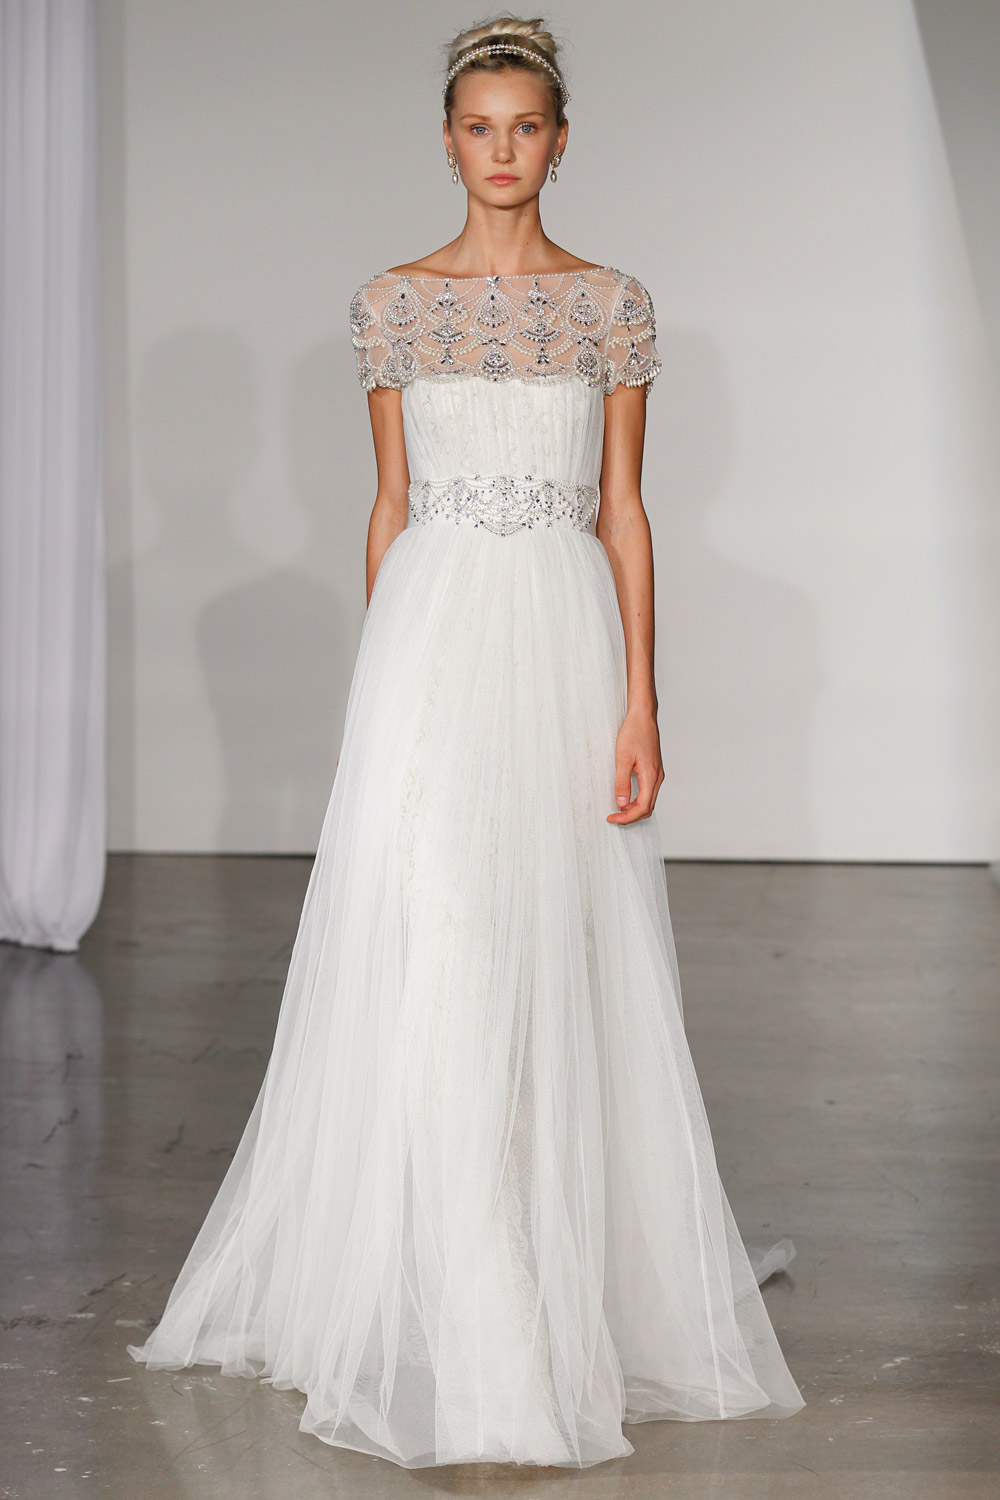 photo: For Wedding Dresses Brides